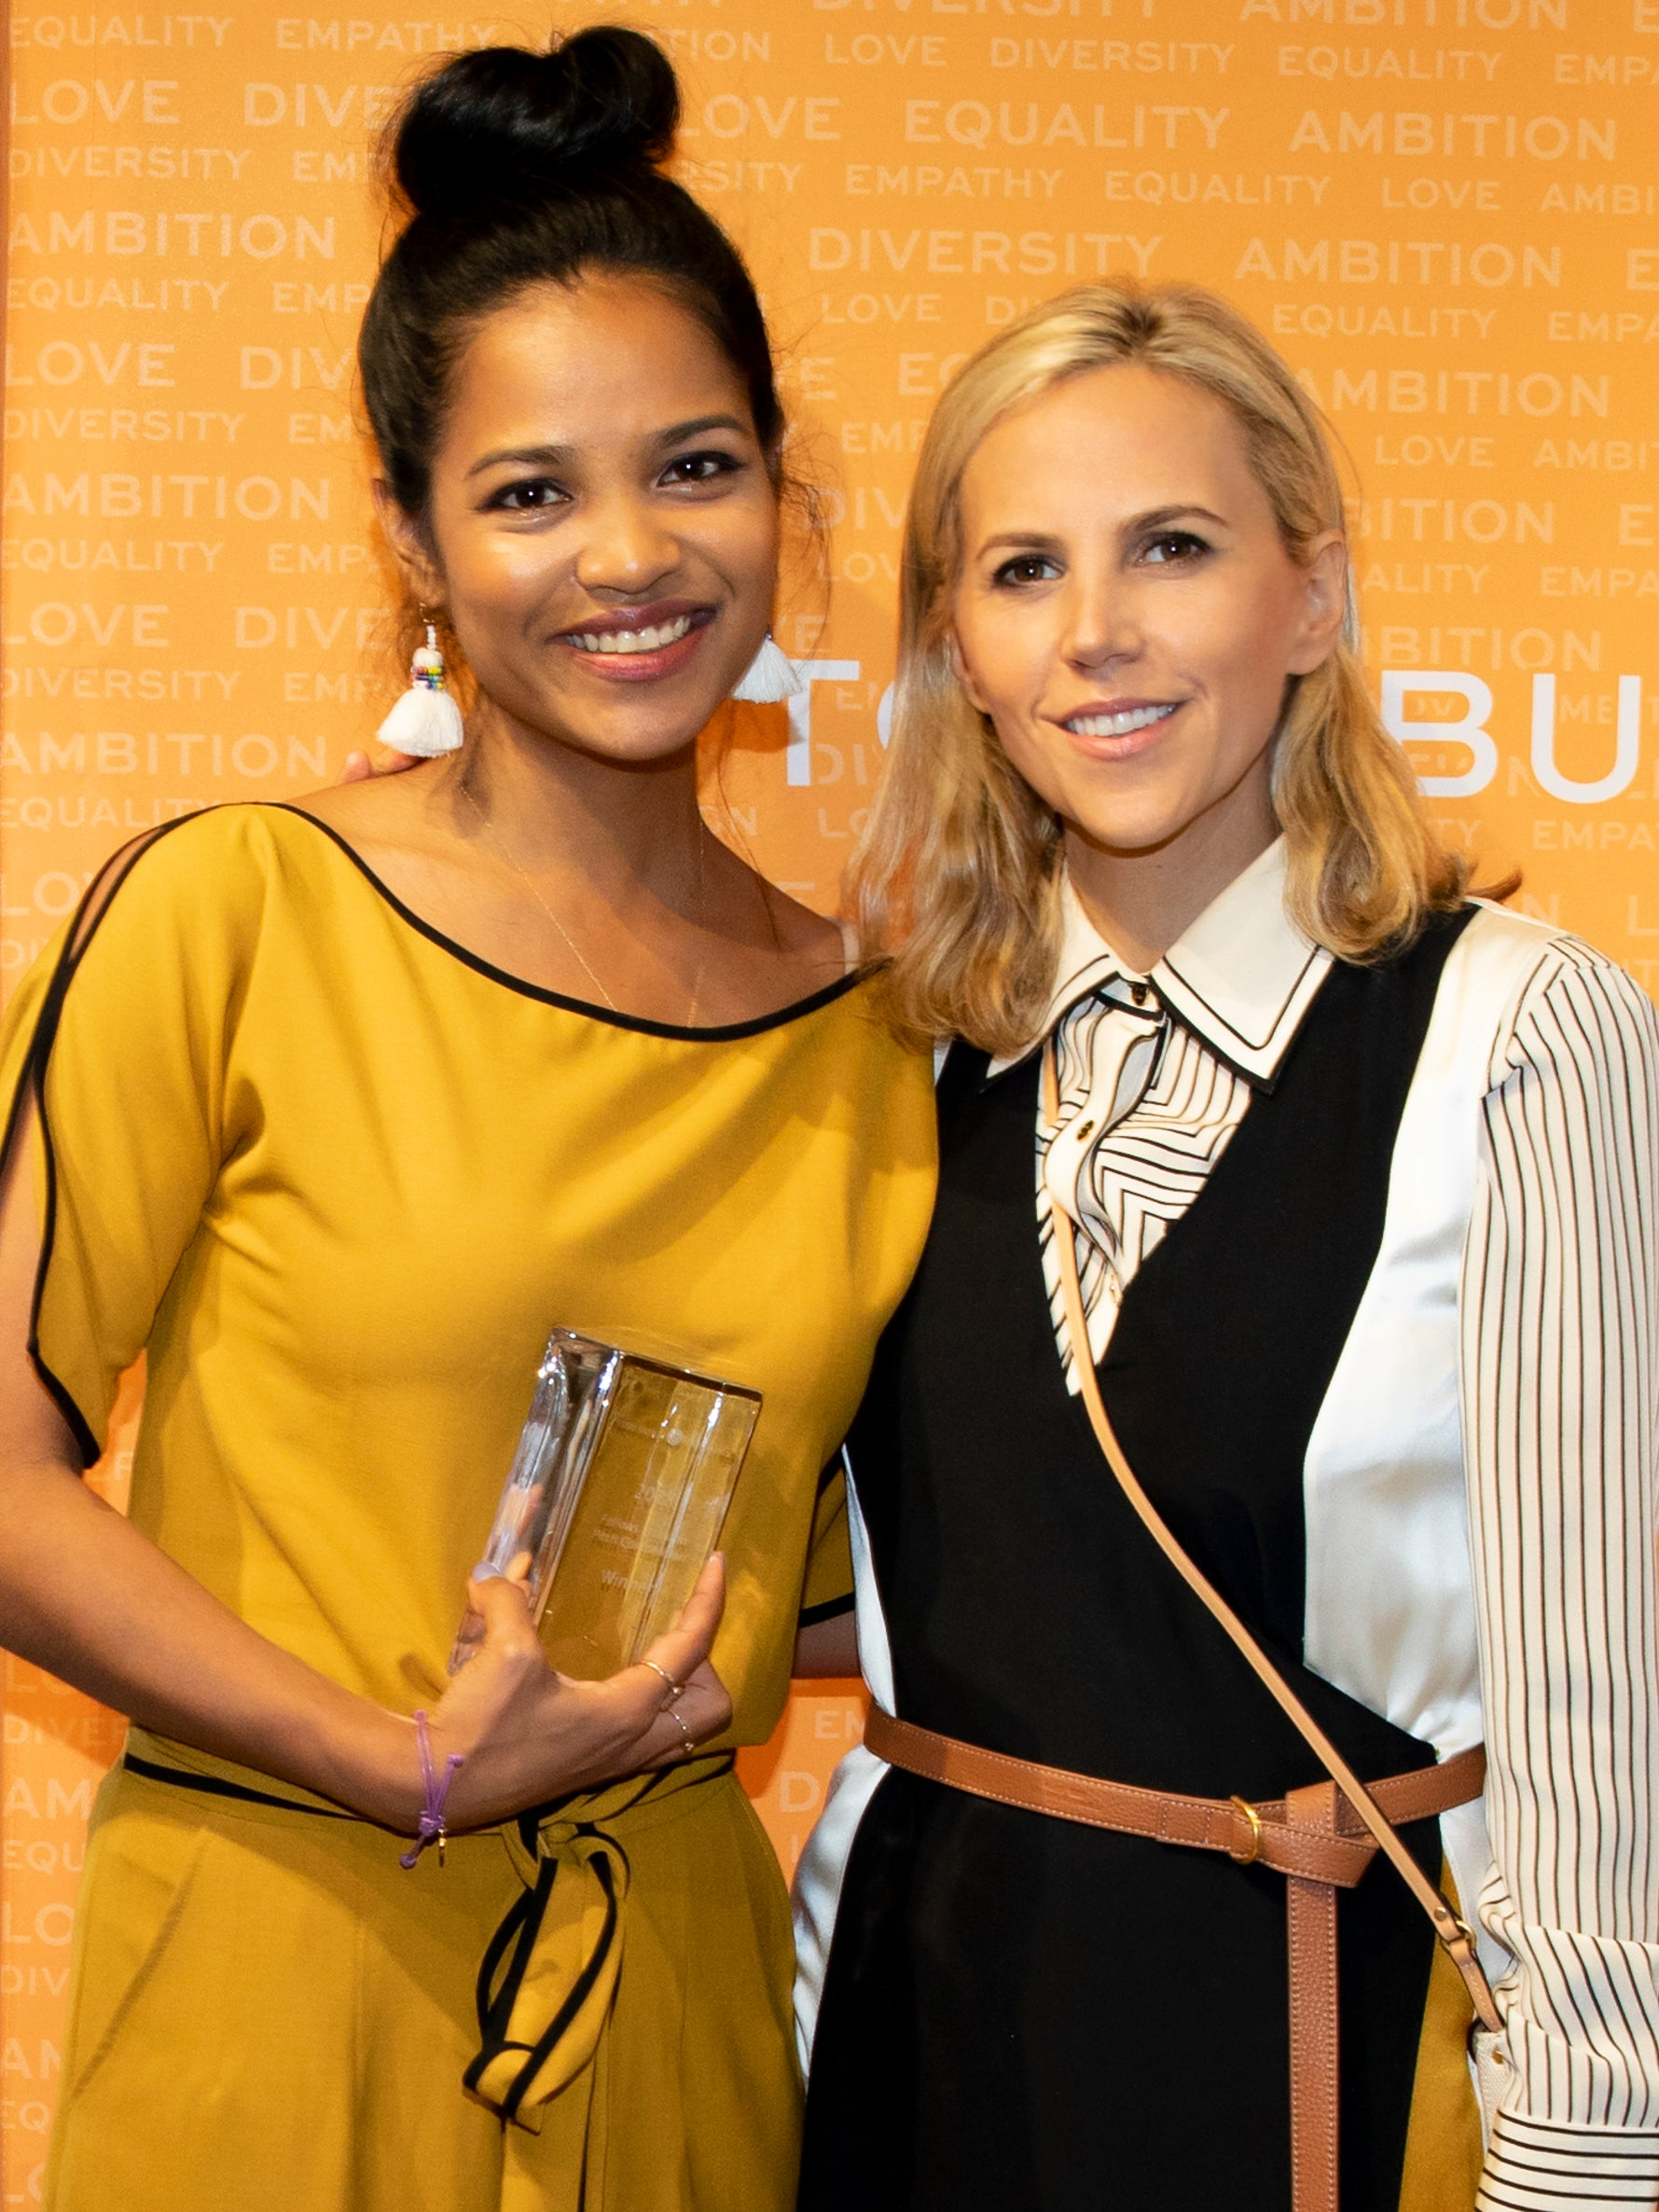 Tory Burch and Sashee Chandran _ Tory Burch Fellowship 2018